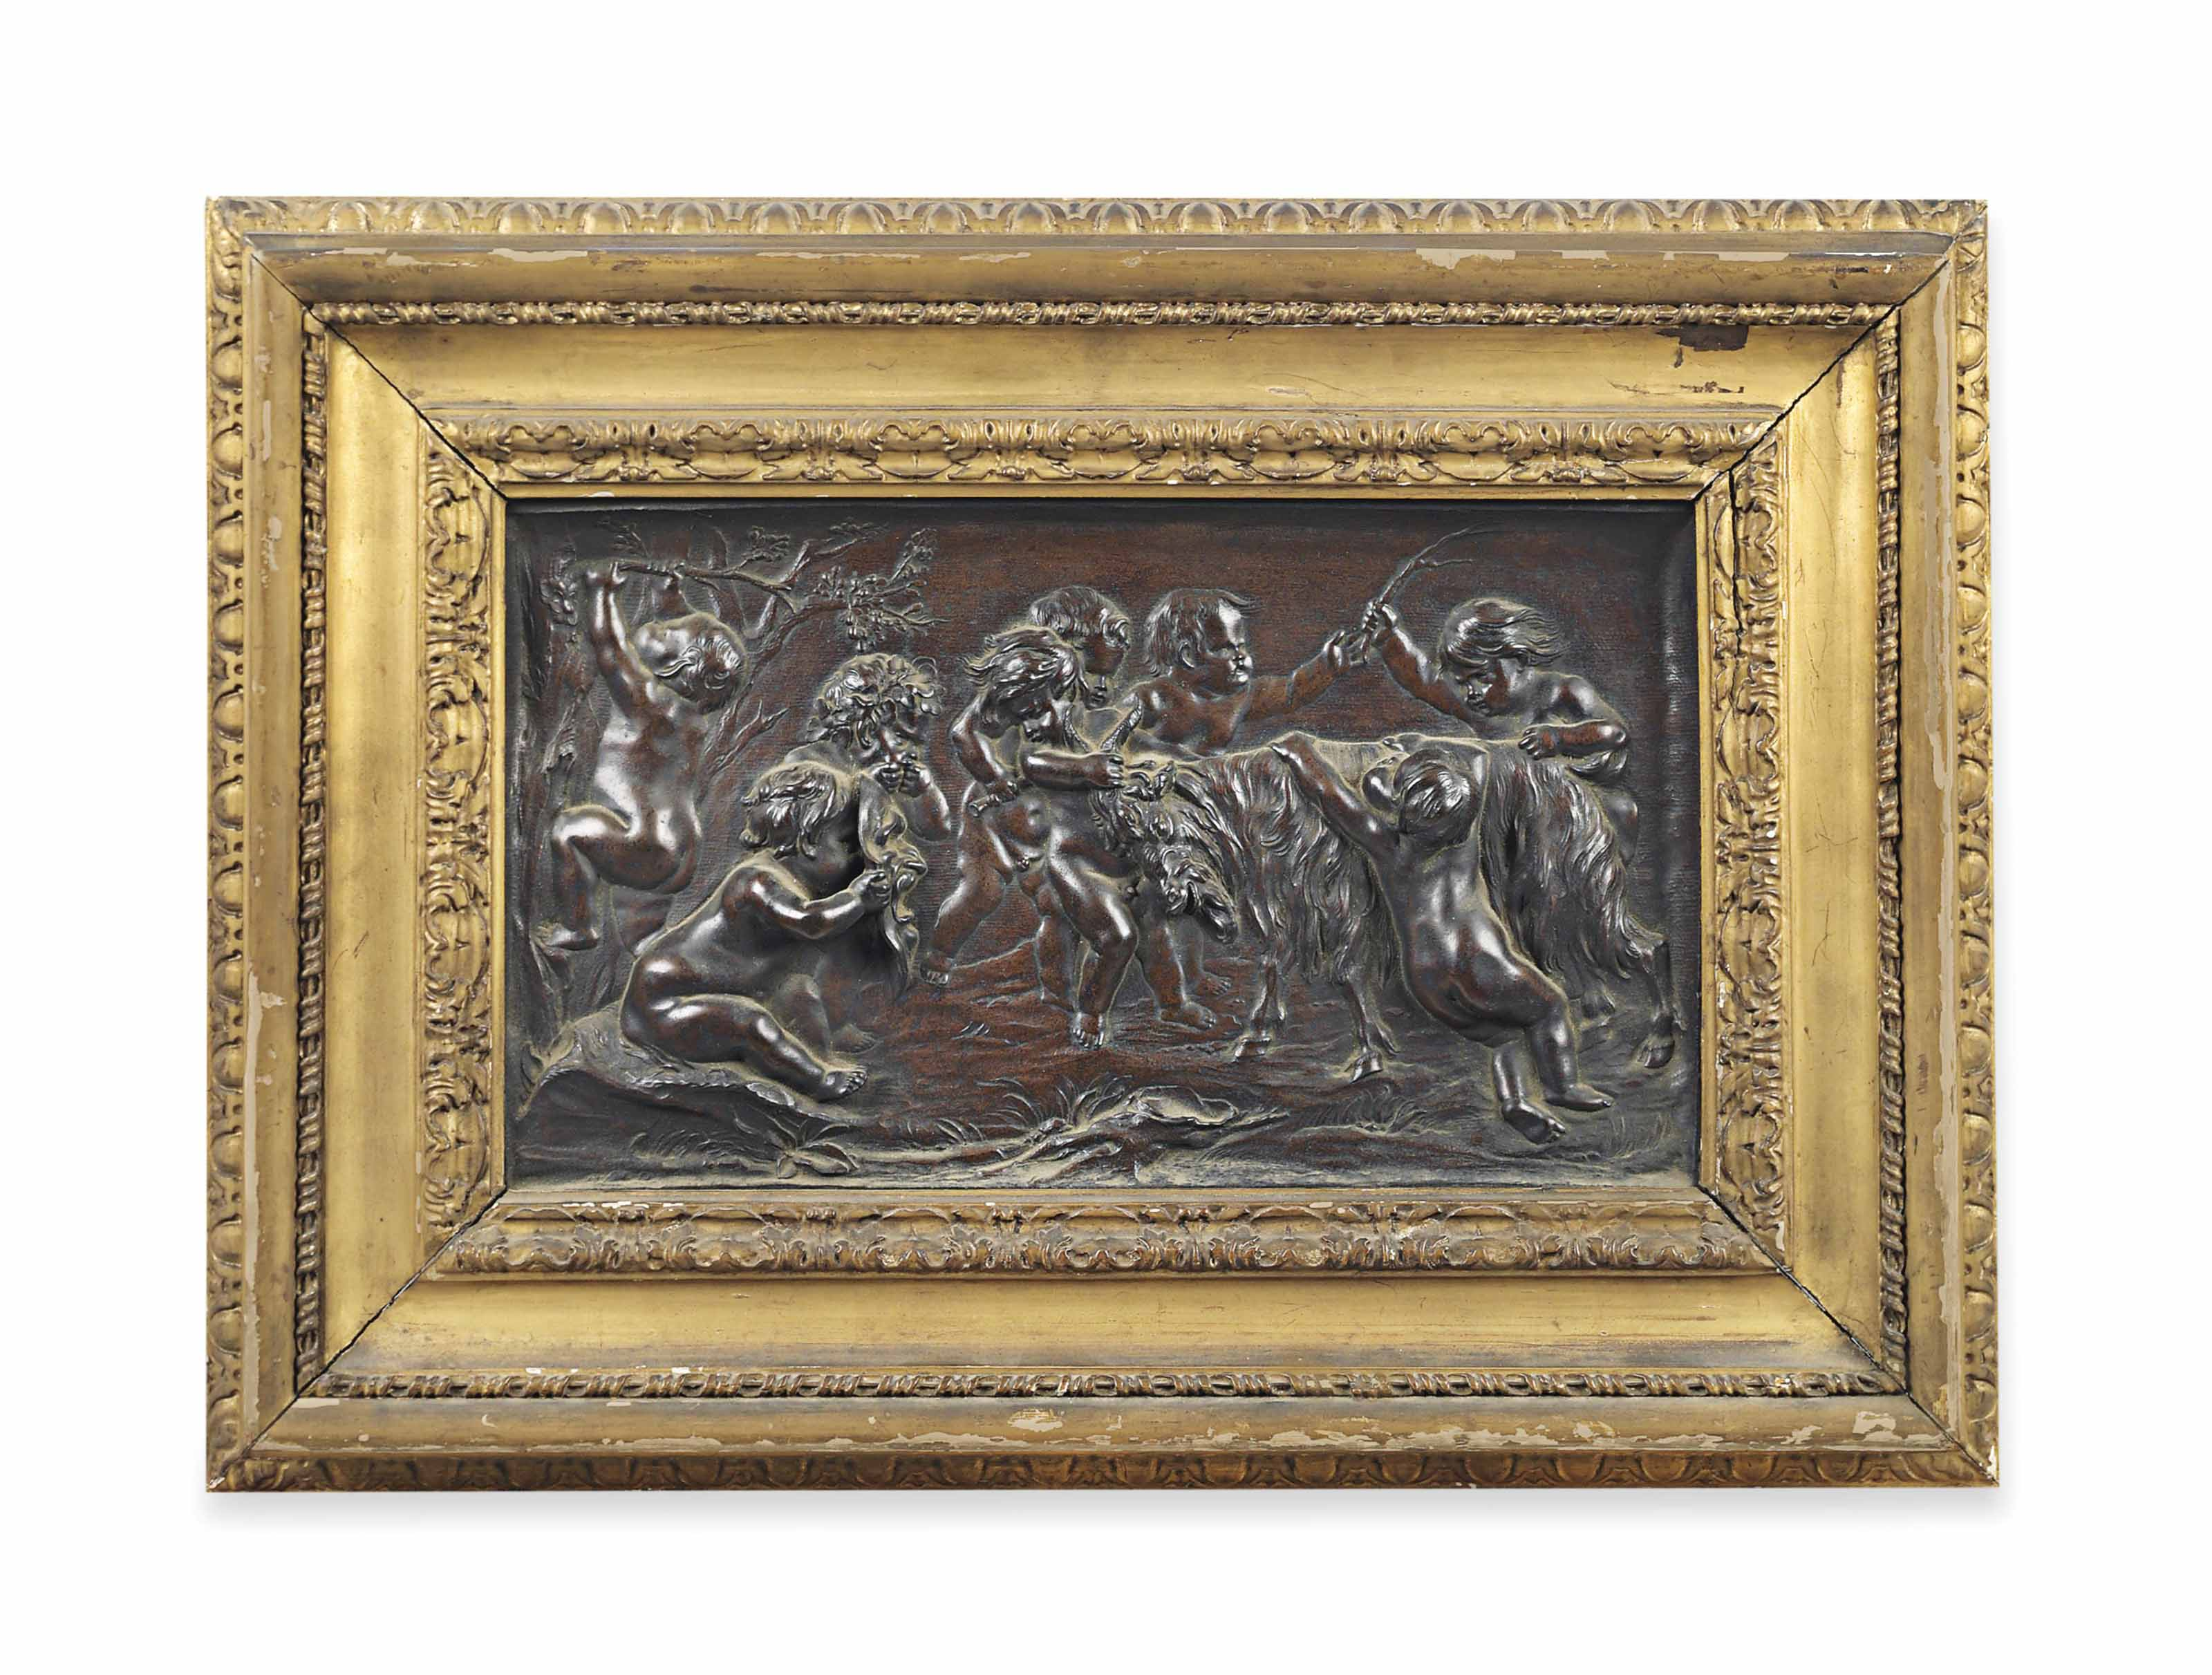 A RECTANGULAR BRONZE RELIEF OF BACCHANALIAN INFANTS PLAYING WITH A GOAT